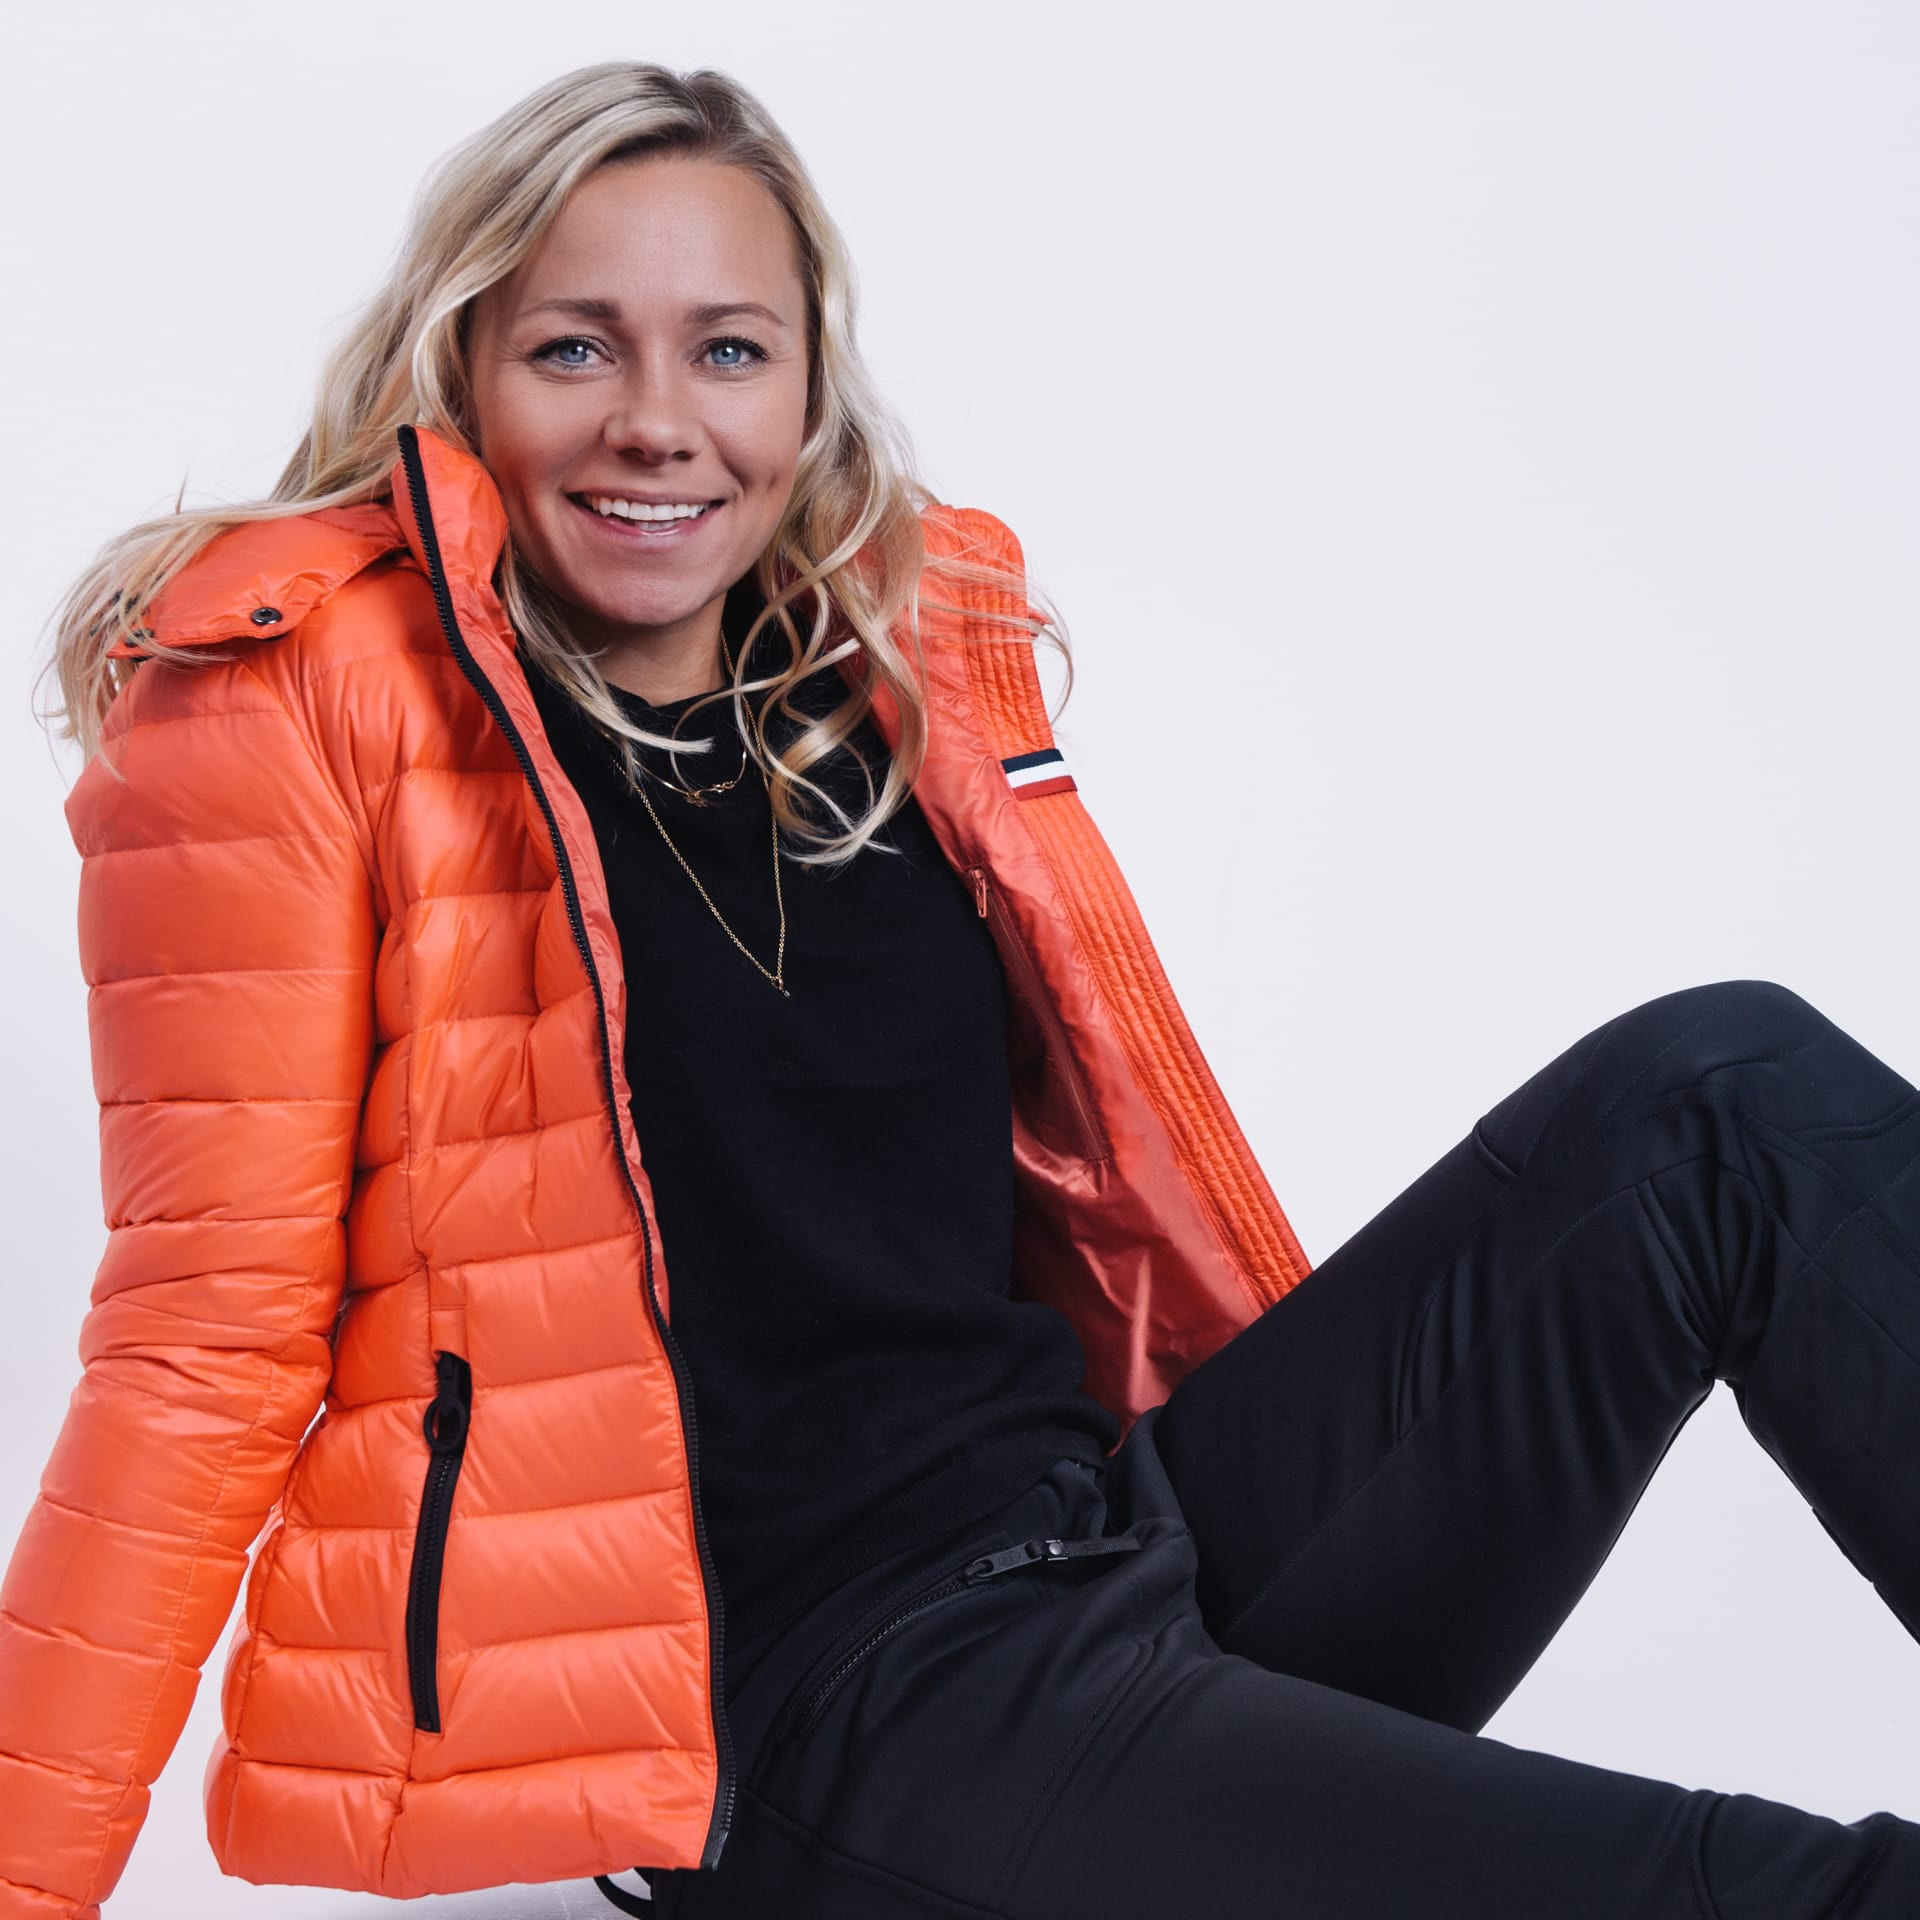 Olympian Frida Hansdotter goes out with a winter campaign